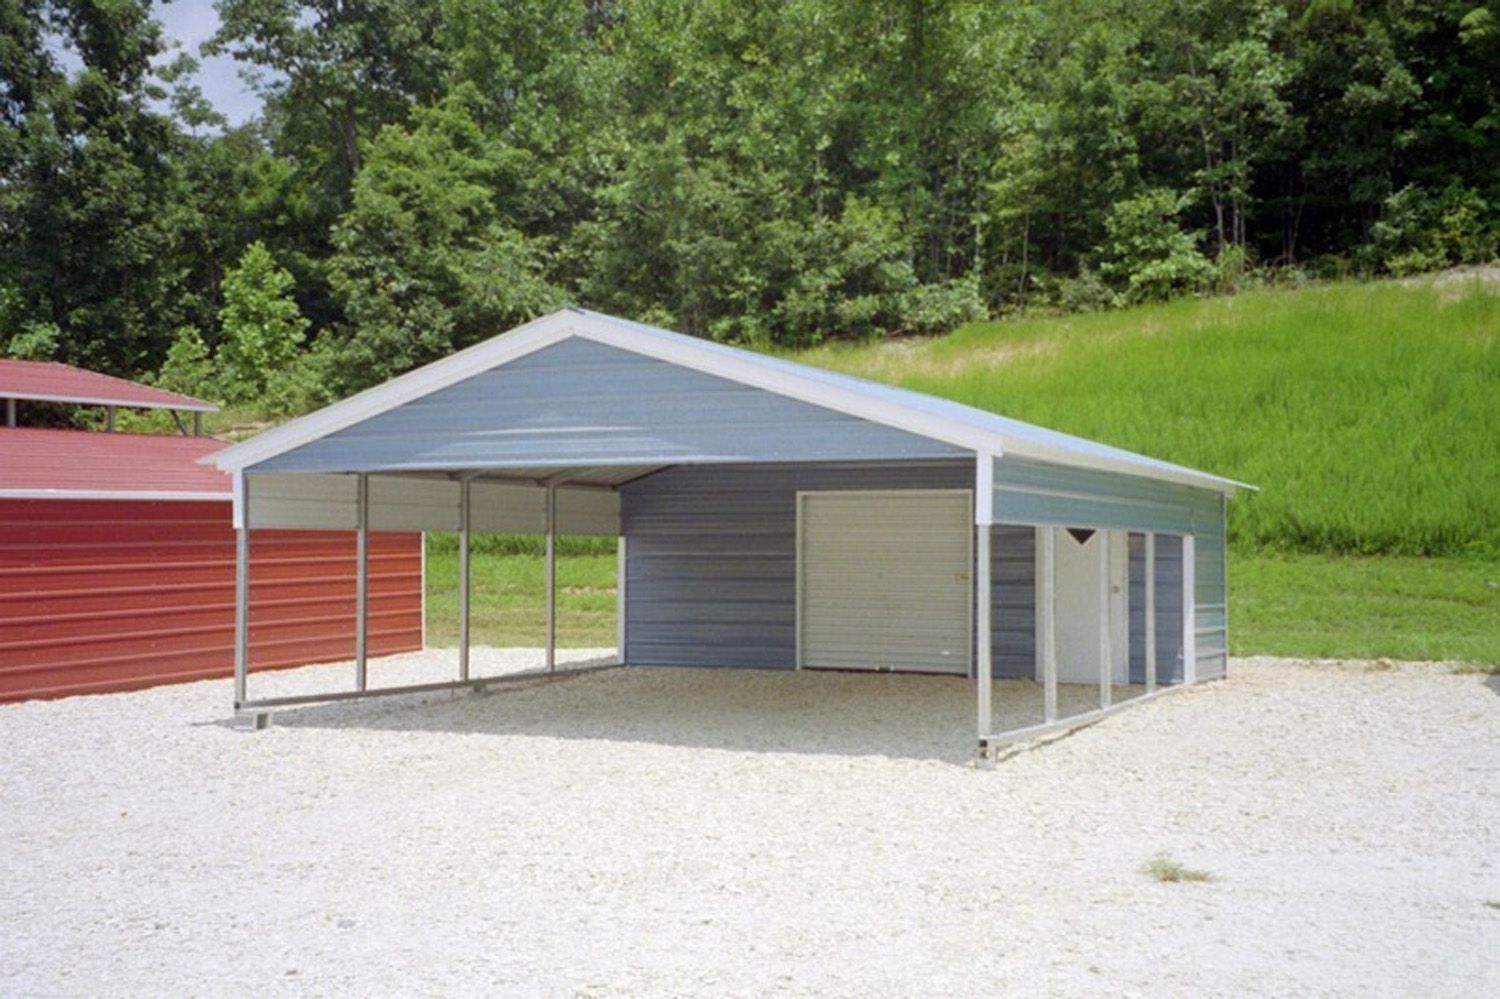 carport kits combo garage carport RLHNEWT